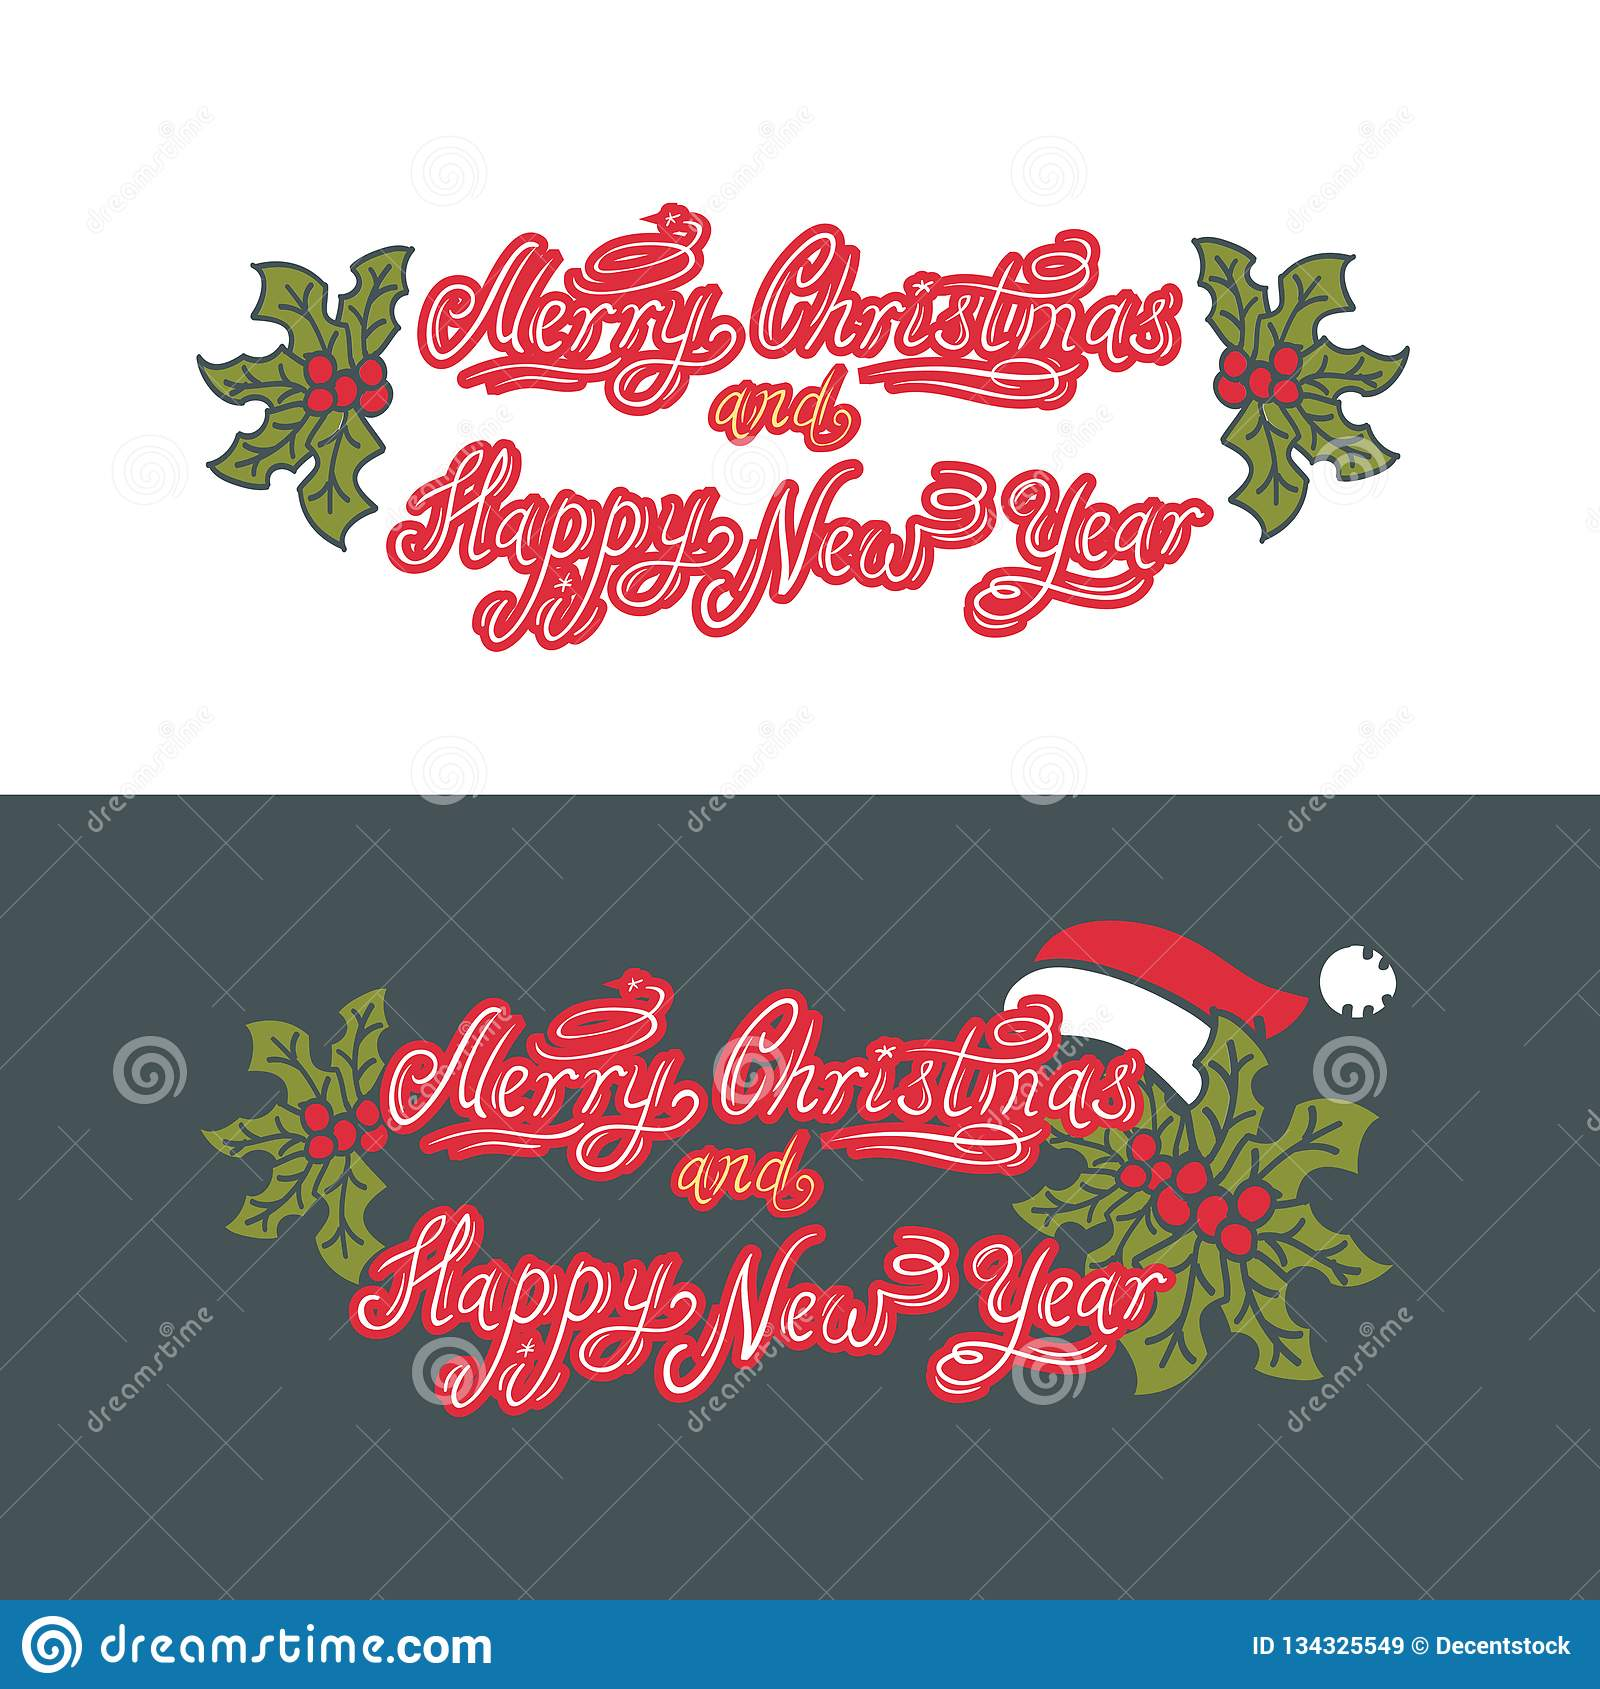 Merry Christmas and Happy New Year. Holiday.